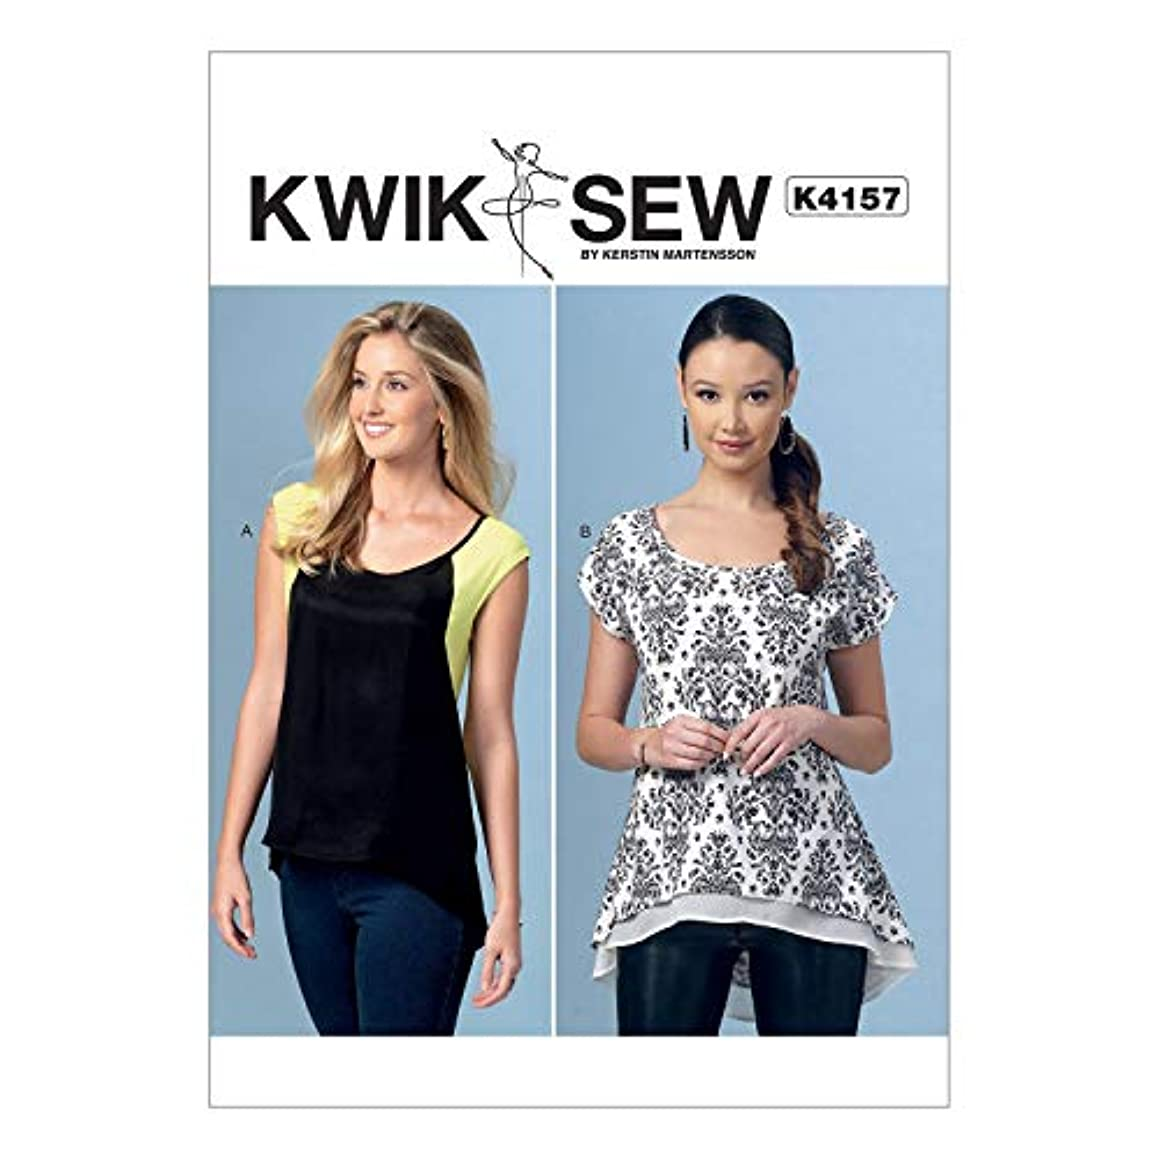 KWIK-SEW PATTERNS K4157 Misses' Scoop-Neck High-Low Tops, All Sizes